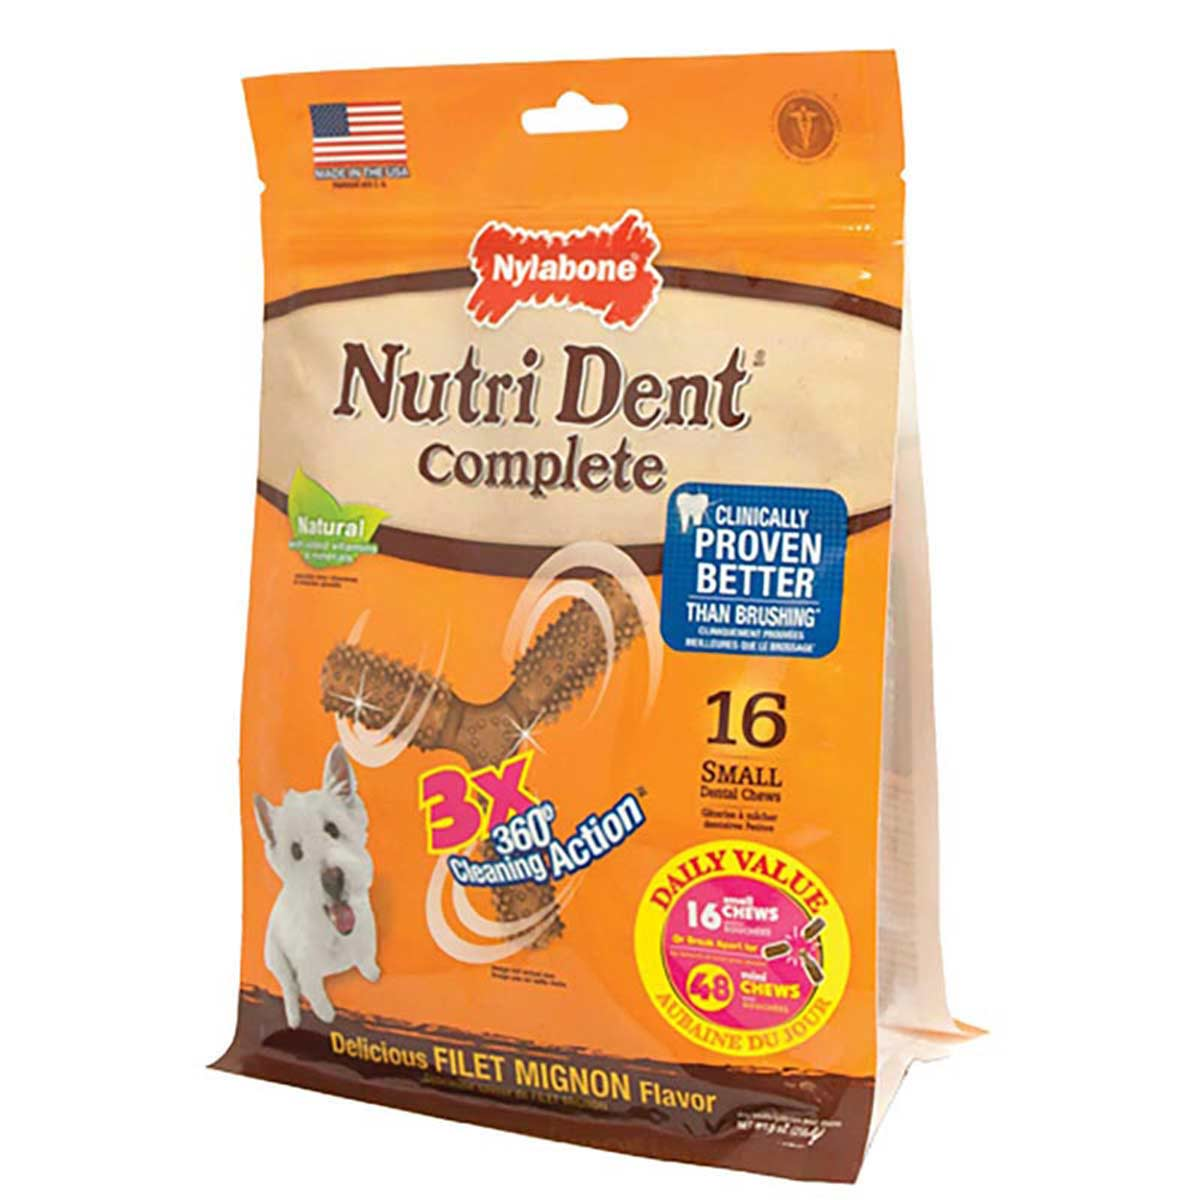 Nylabone Nutri Dent Complete 3 Point Dog Bone Small 16 Count Pouch